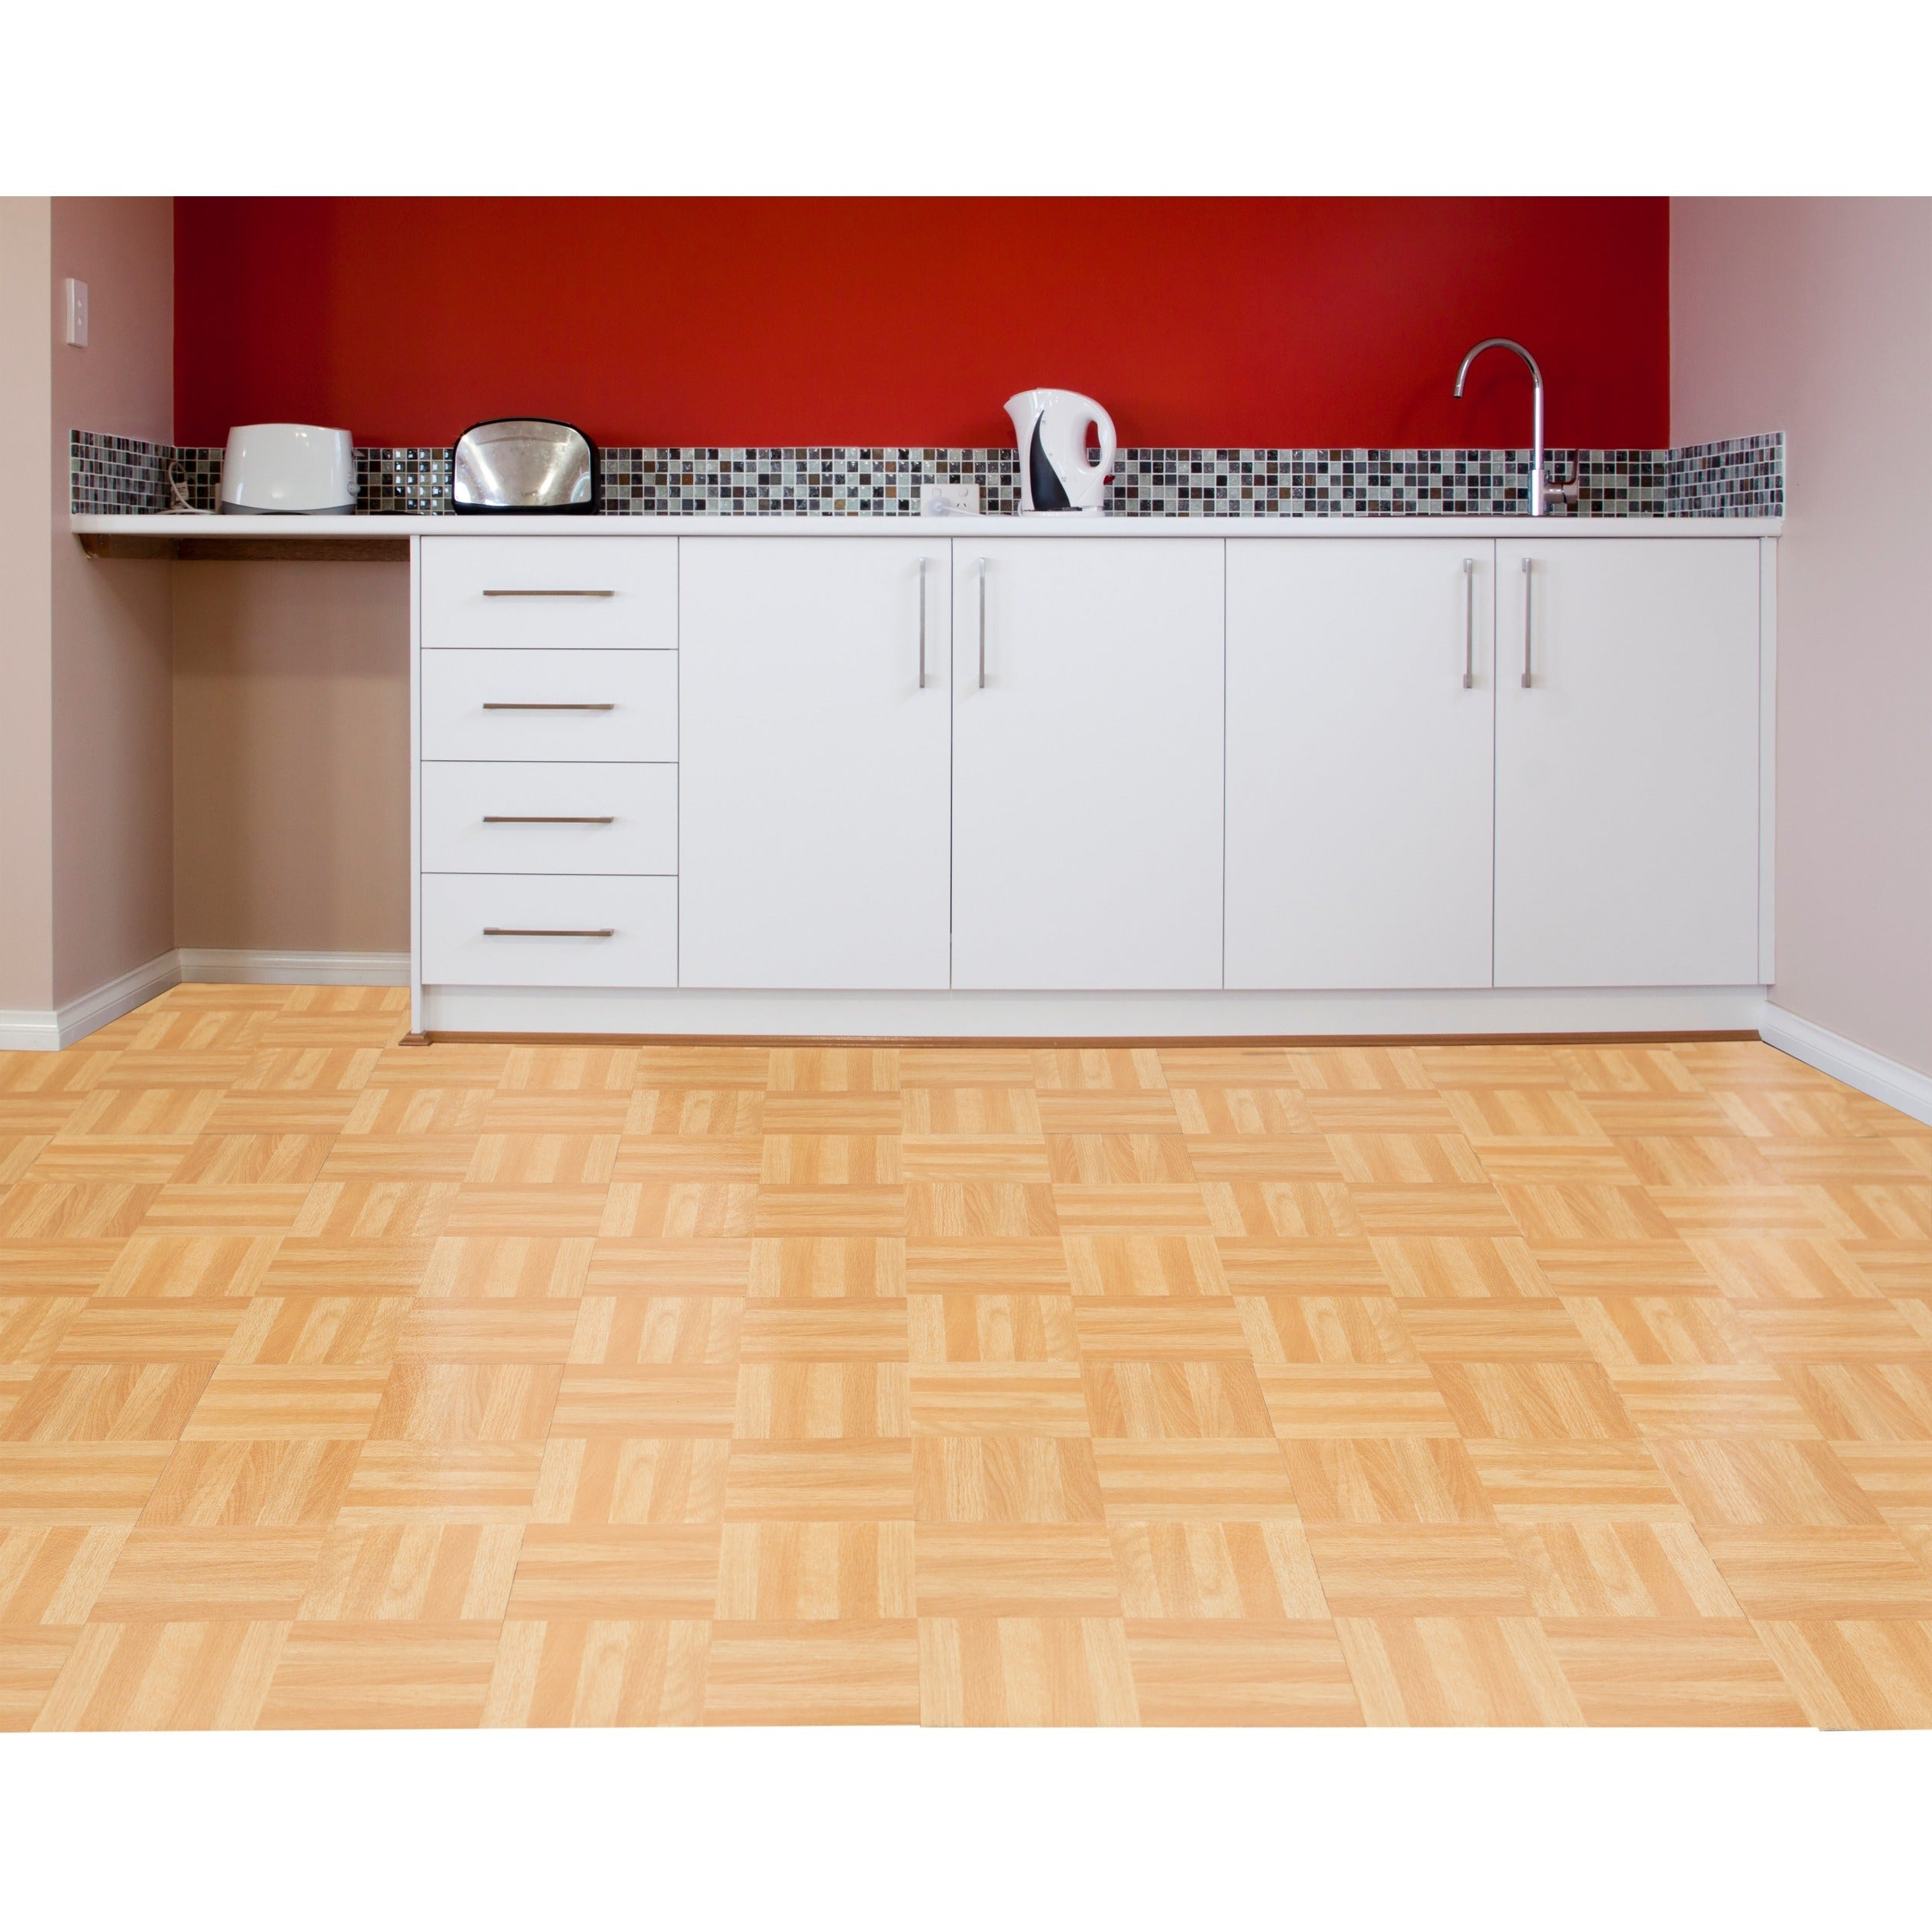 Achim nexus wood look 12x12 self adhesive vinyl floor tile 20 achim nexus wood look 12x12 self adhesive vinyl floor tile 20 tiles20 sq ft free shipping on orders over 45 overstock 15774759 dailygadgetfo Choice Image